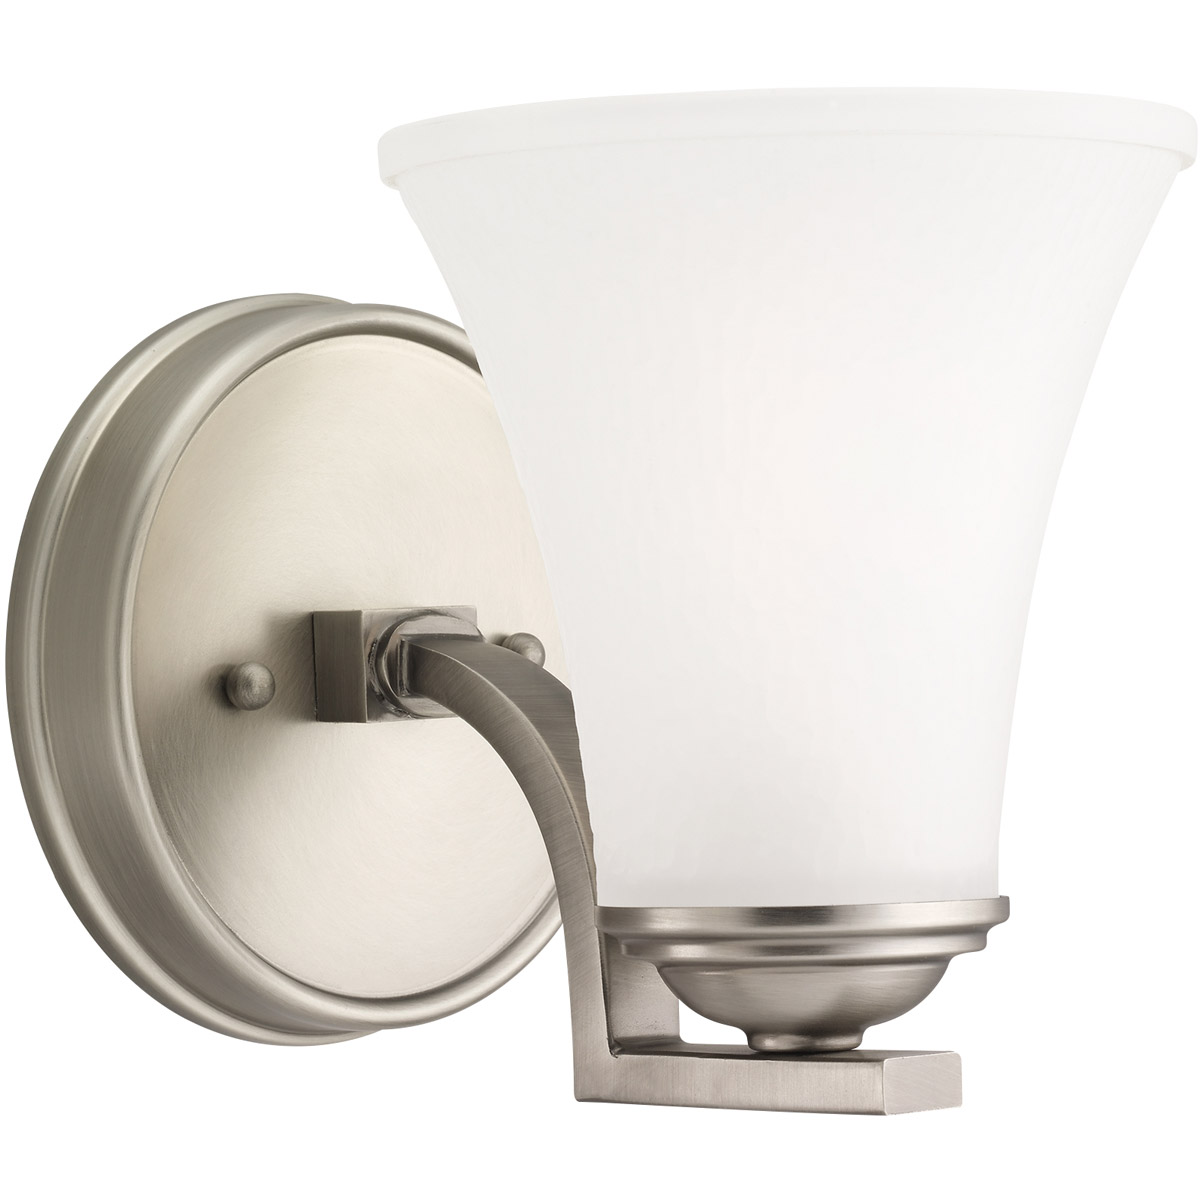 Sea Gull Lighting Somerton 1 Light Bath Vanity in Antique Brushed Nickel 41375-965 photo